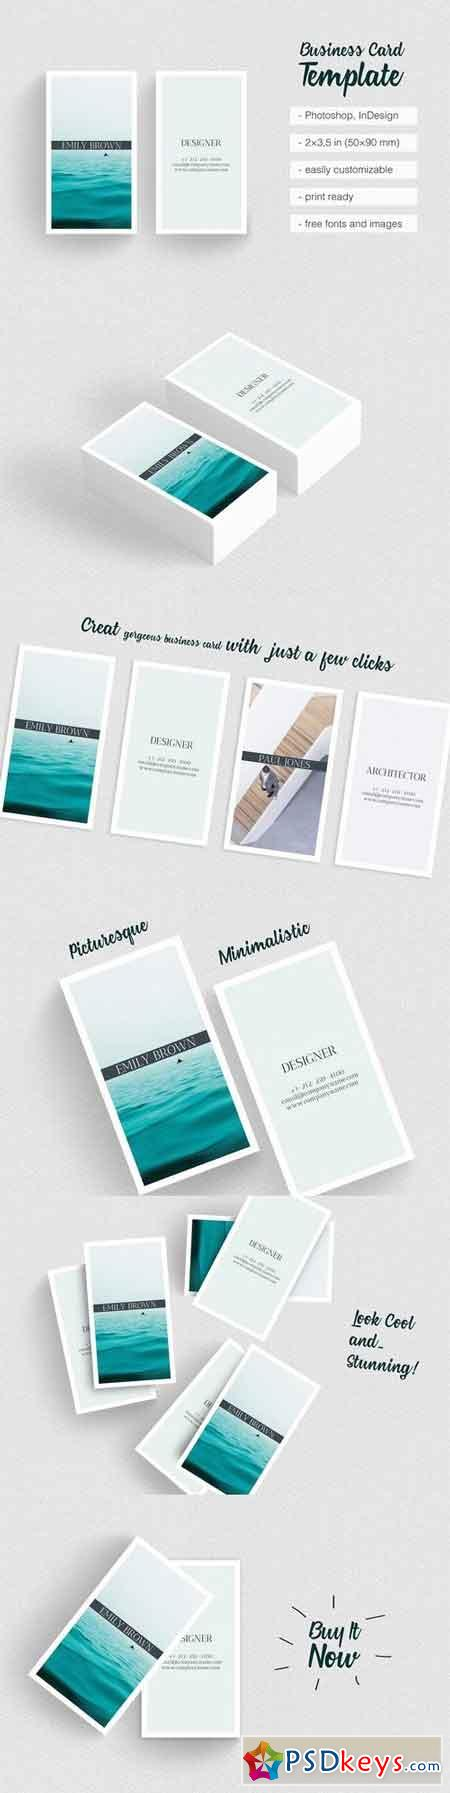 Clean Photographer Business Card 1466970